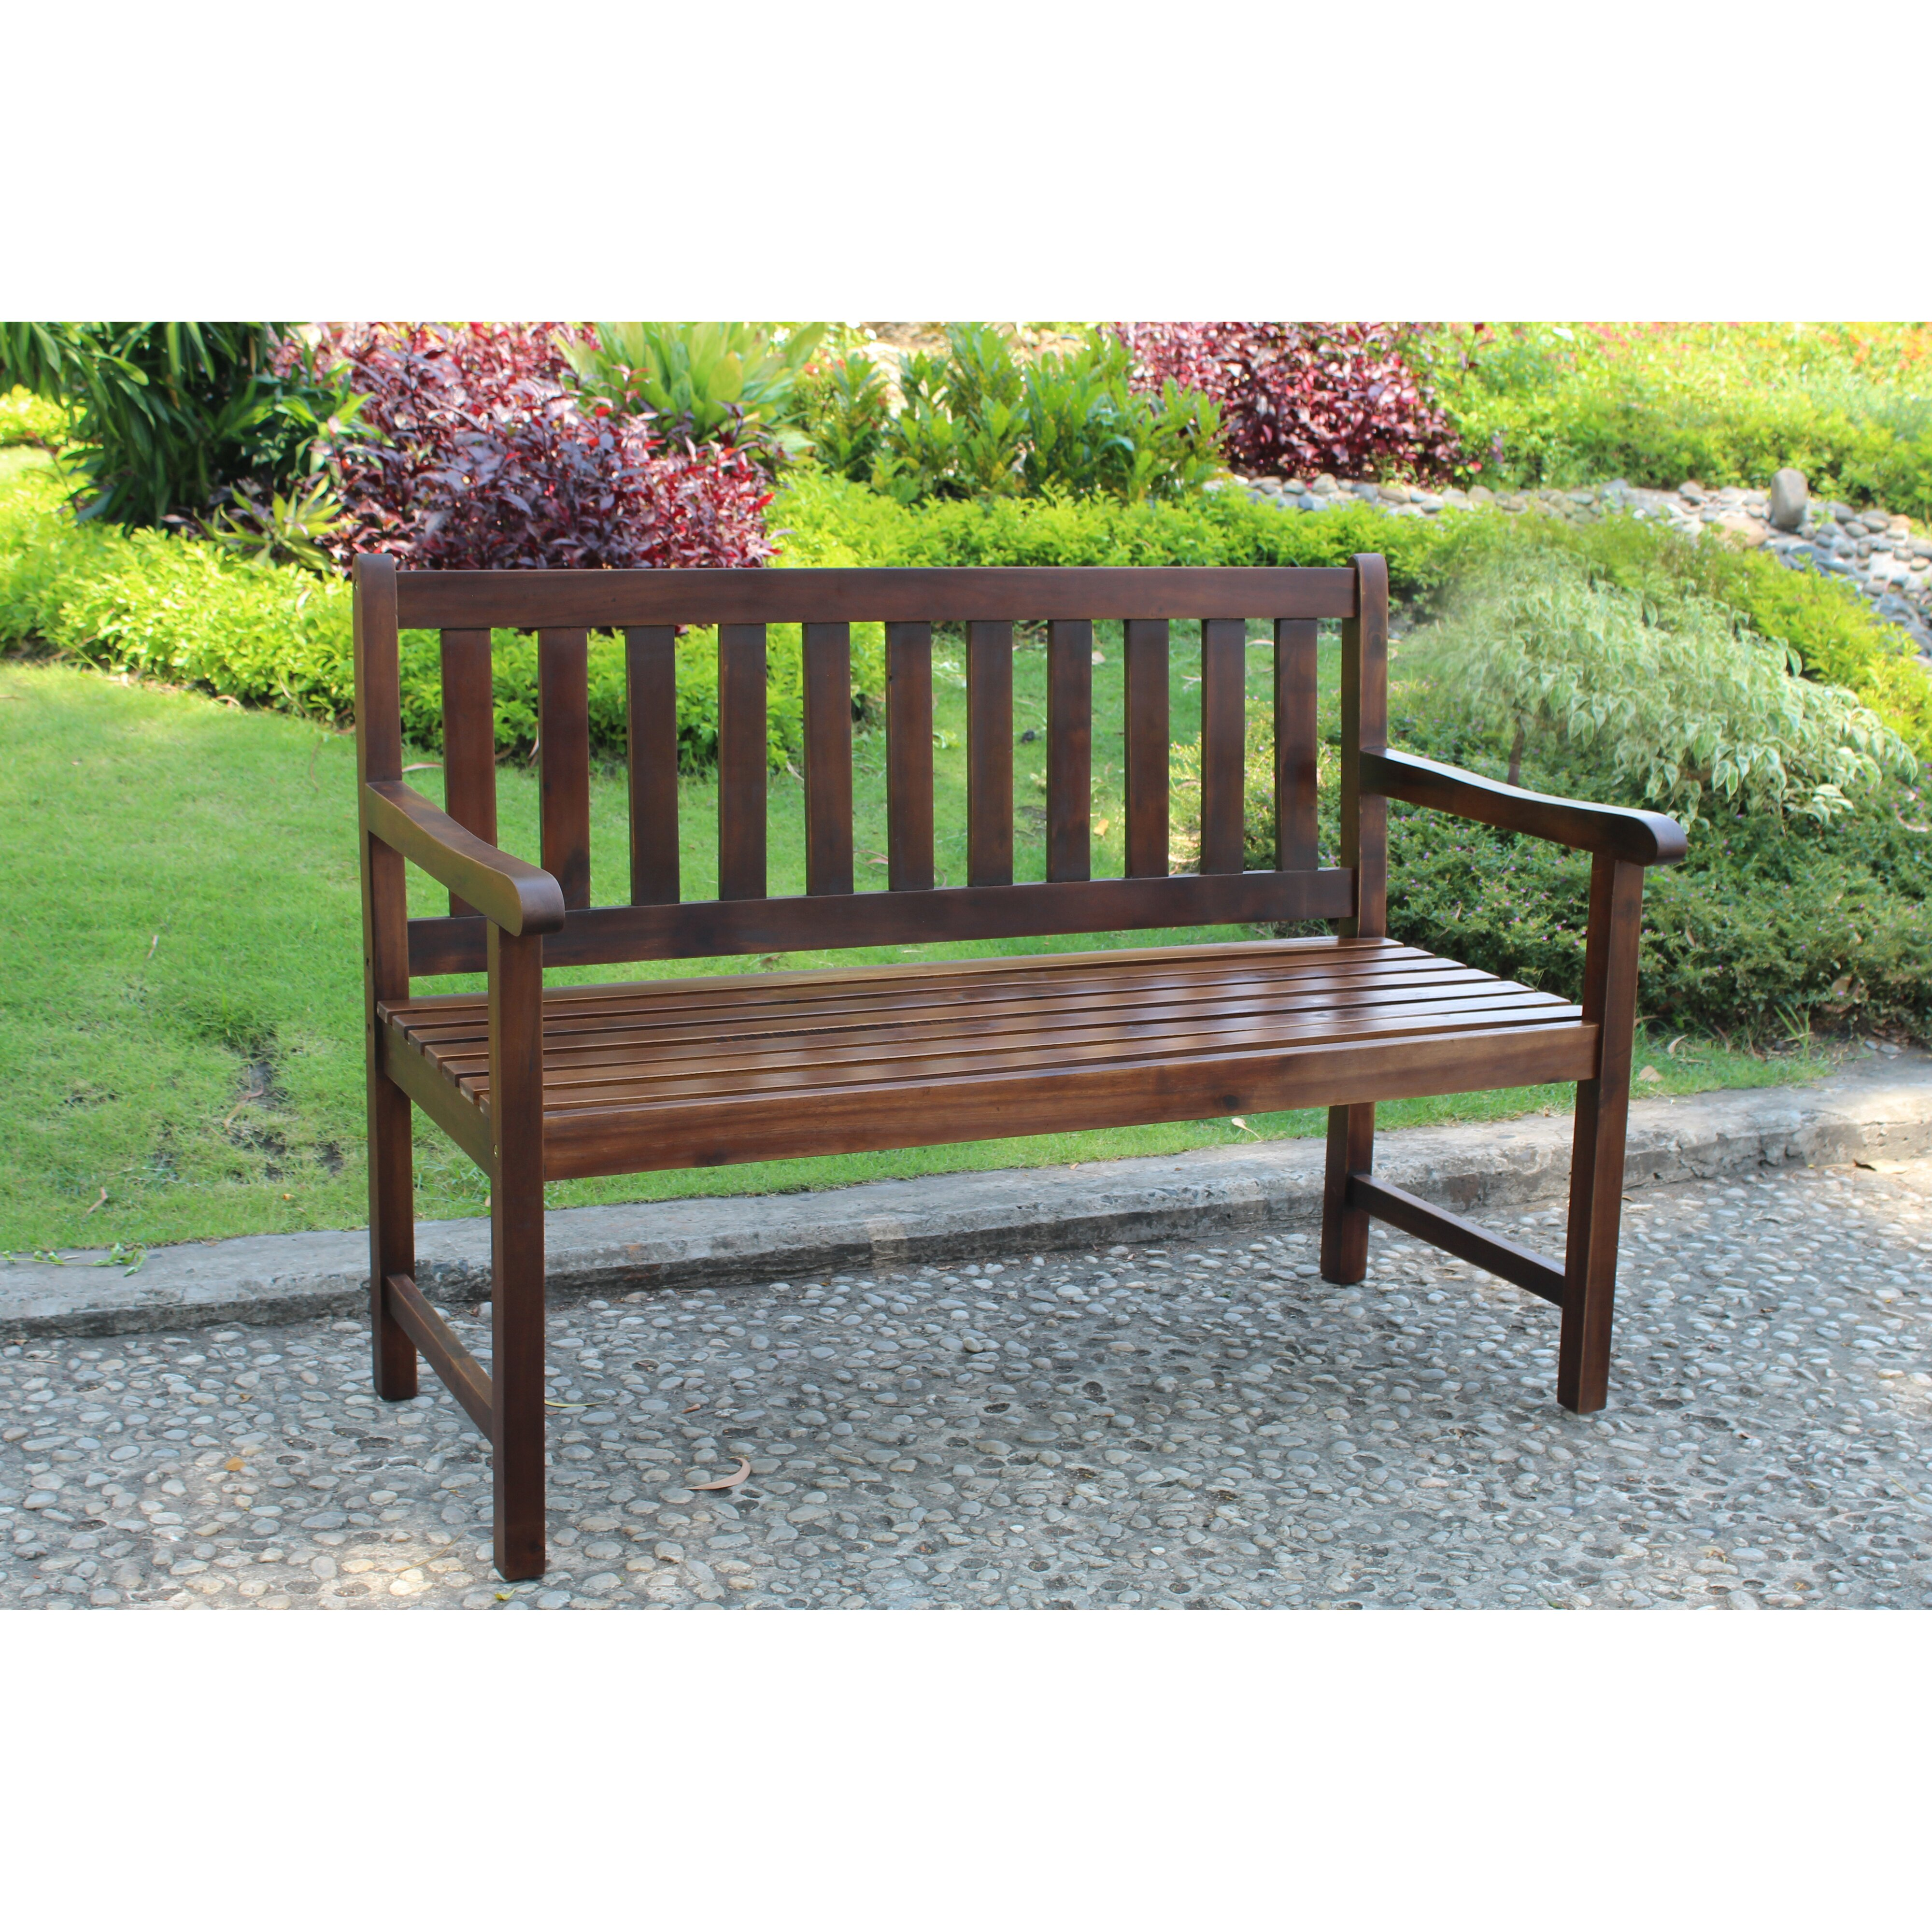 Wooden Benches Outdoor: Breakwater Bay Sandy Point Acacia Wood Garden Bench